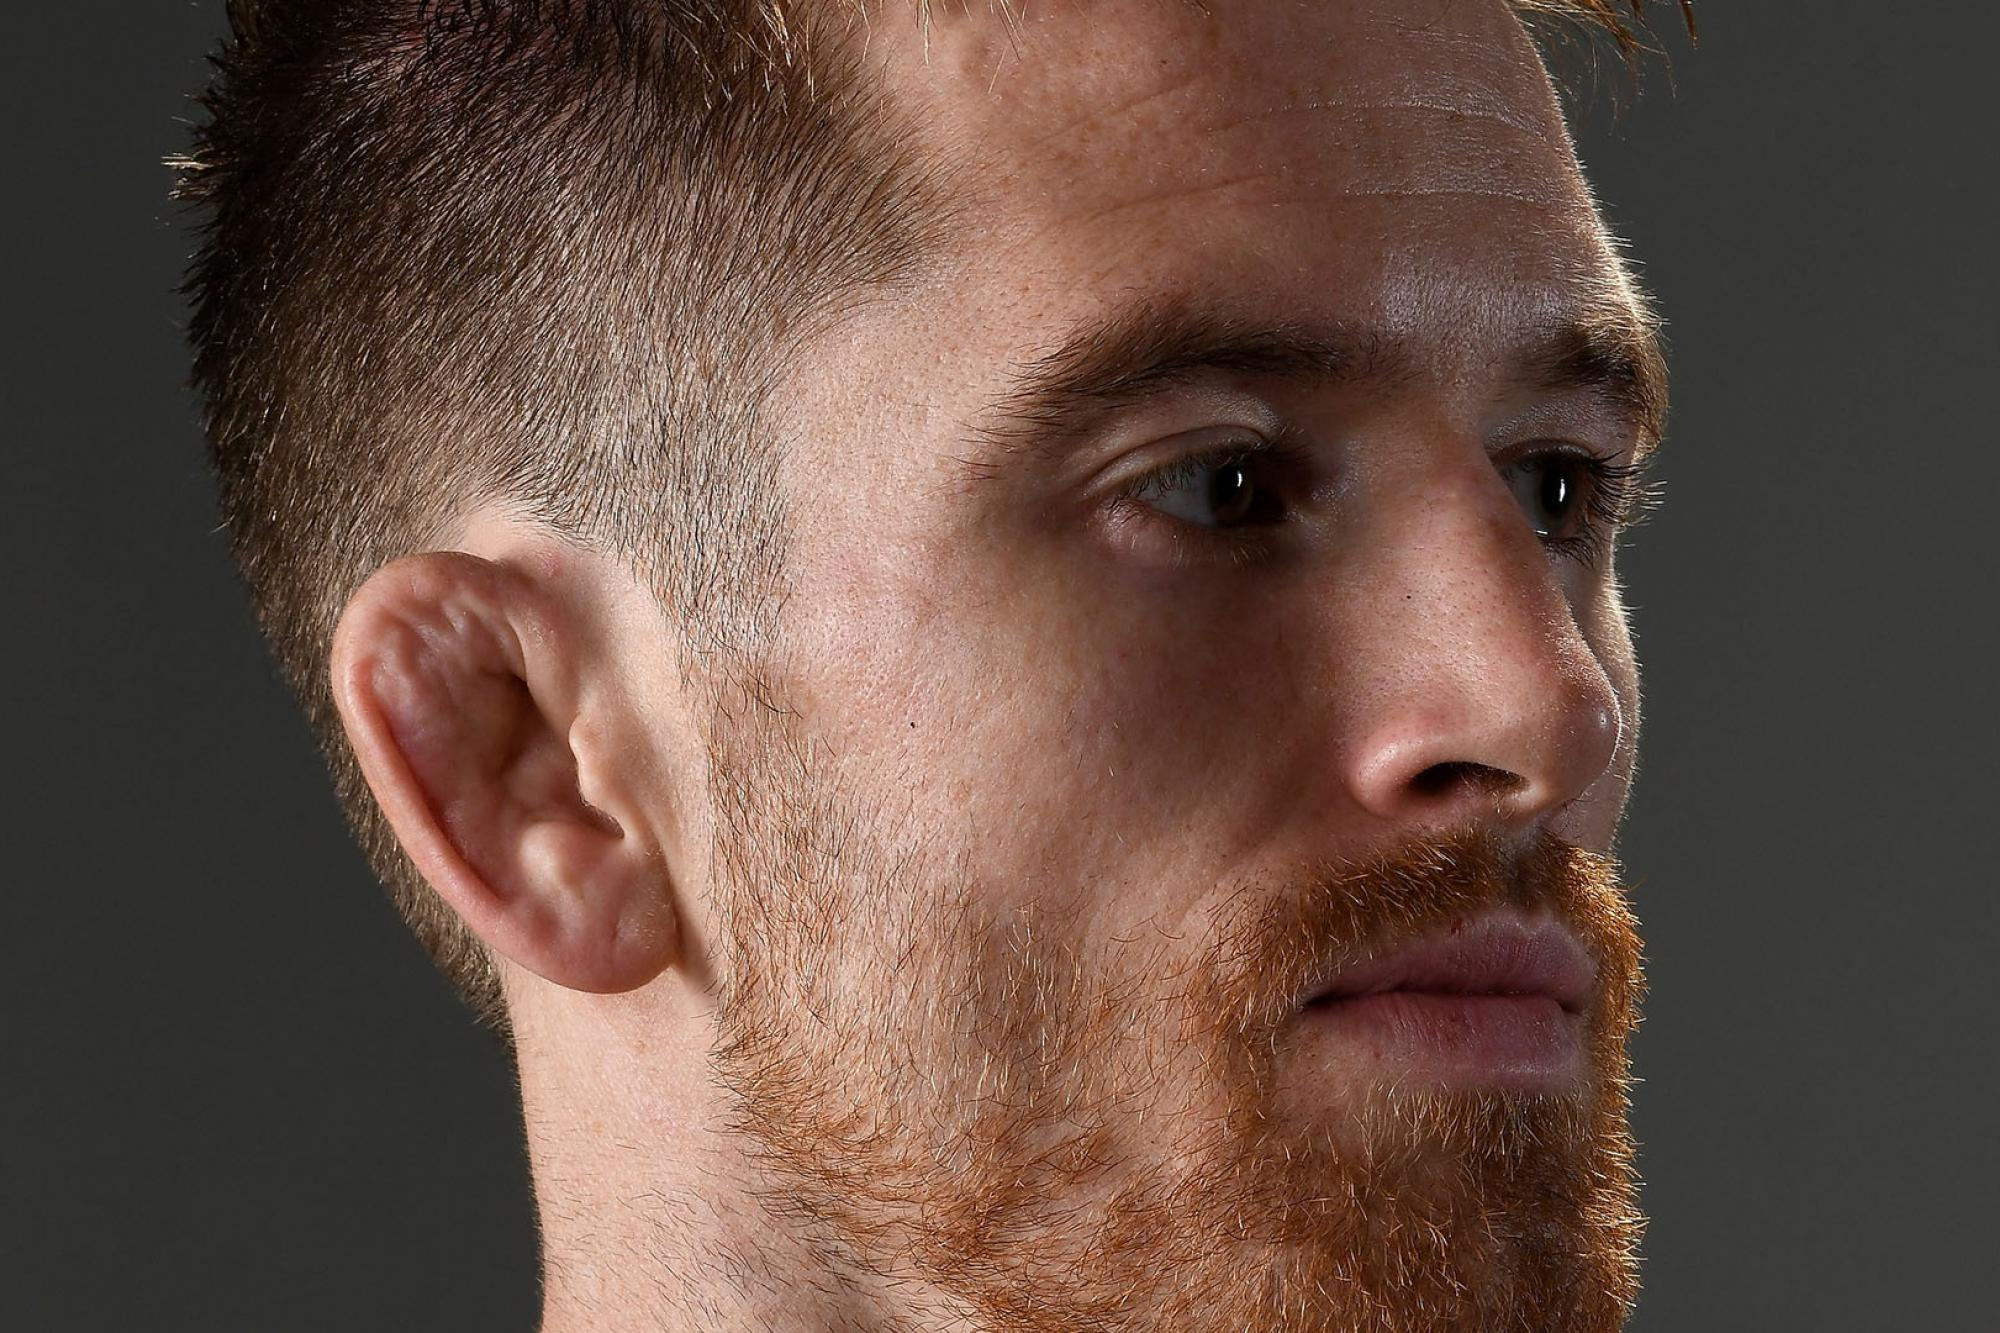 For Cory Sandhagen, His Style Is His Baby | UFC